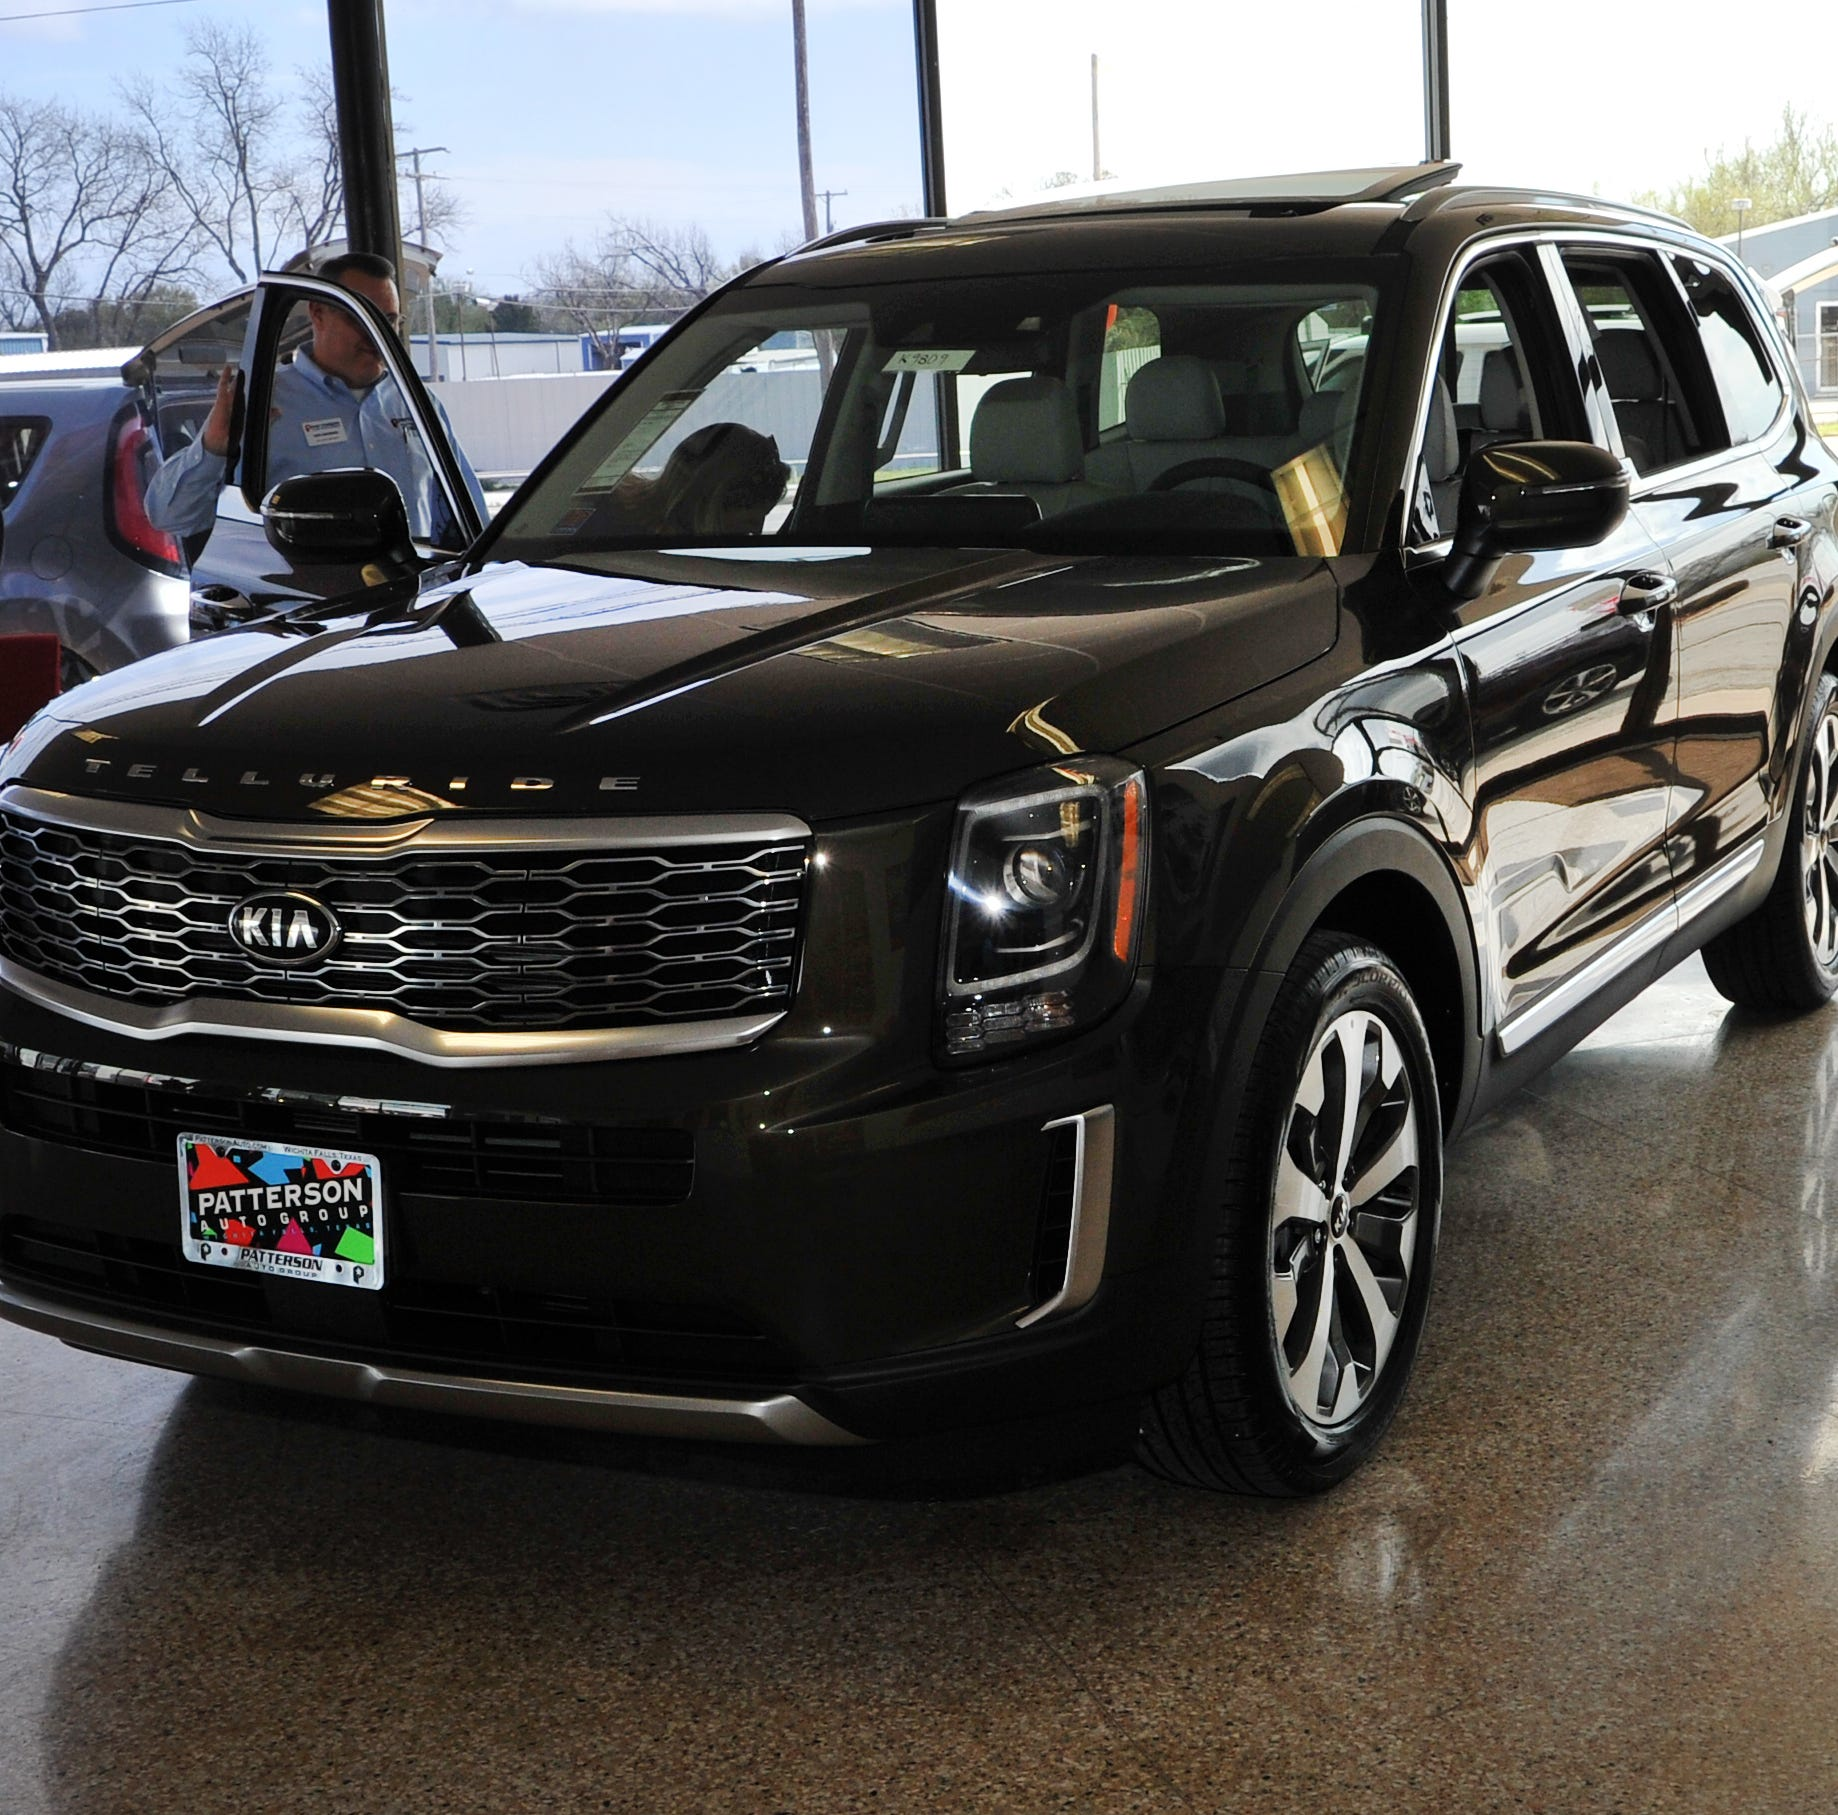 With only 40,000 produced, new Kia Telluride vehicle causes buzz in North Texas